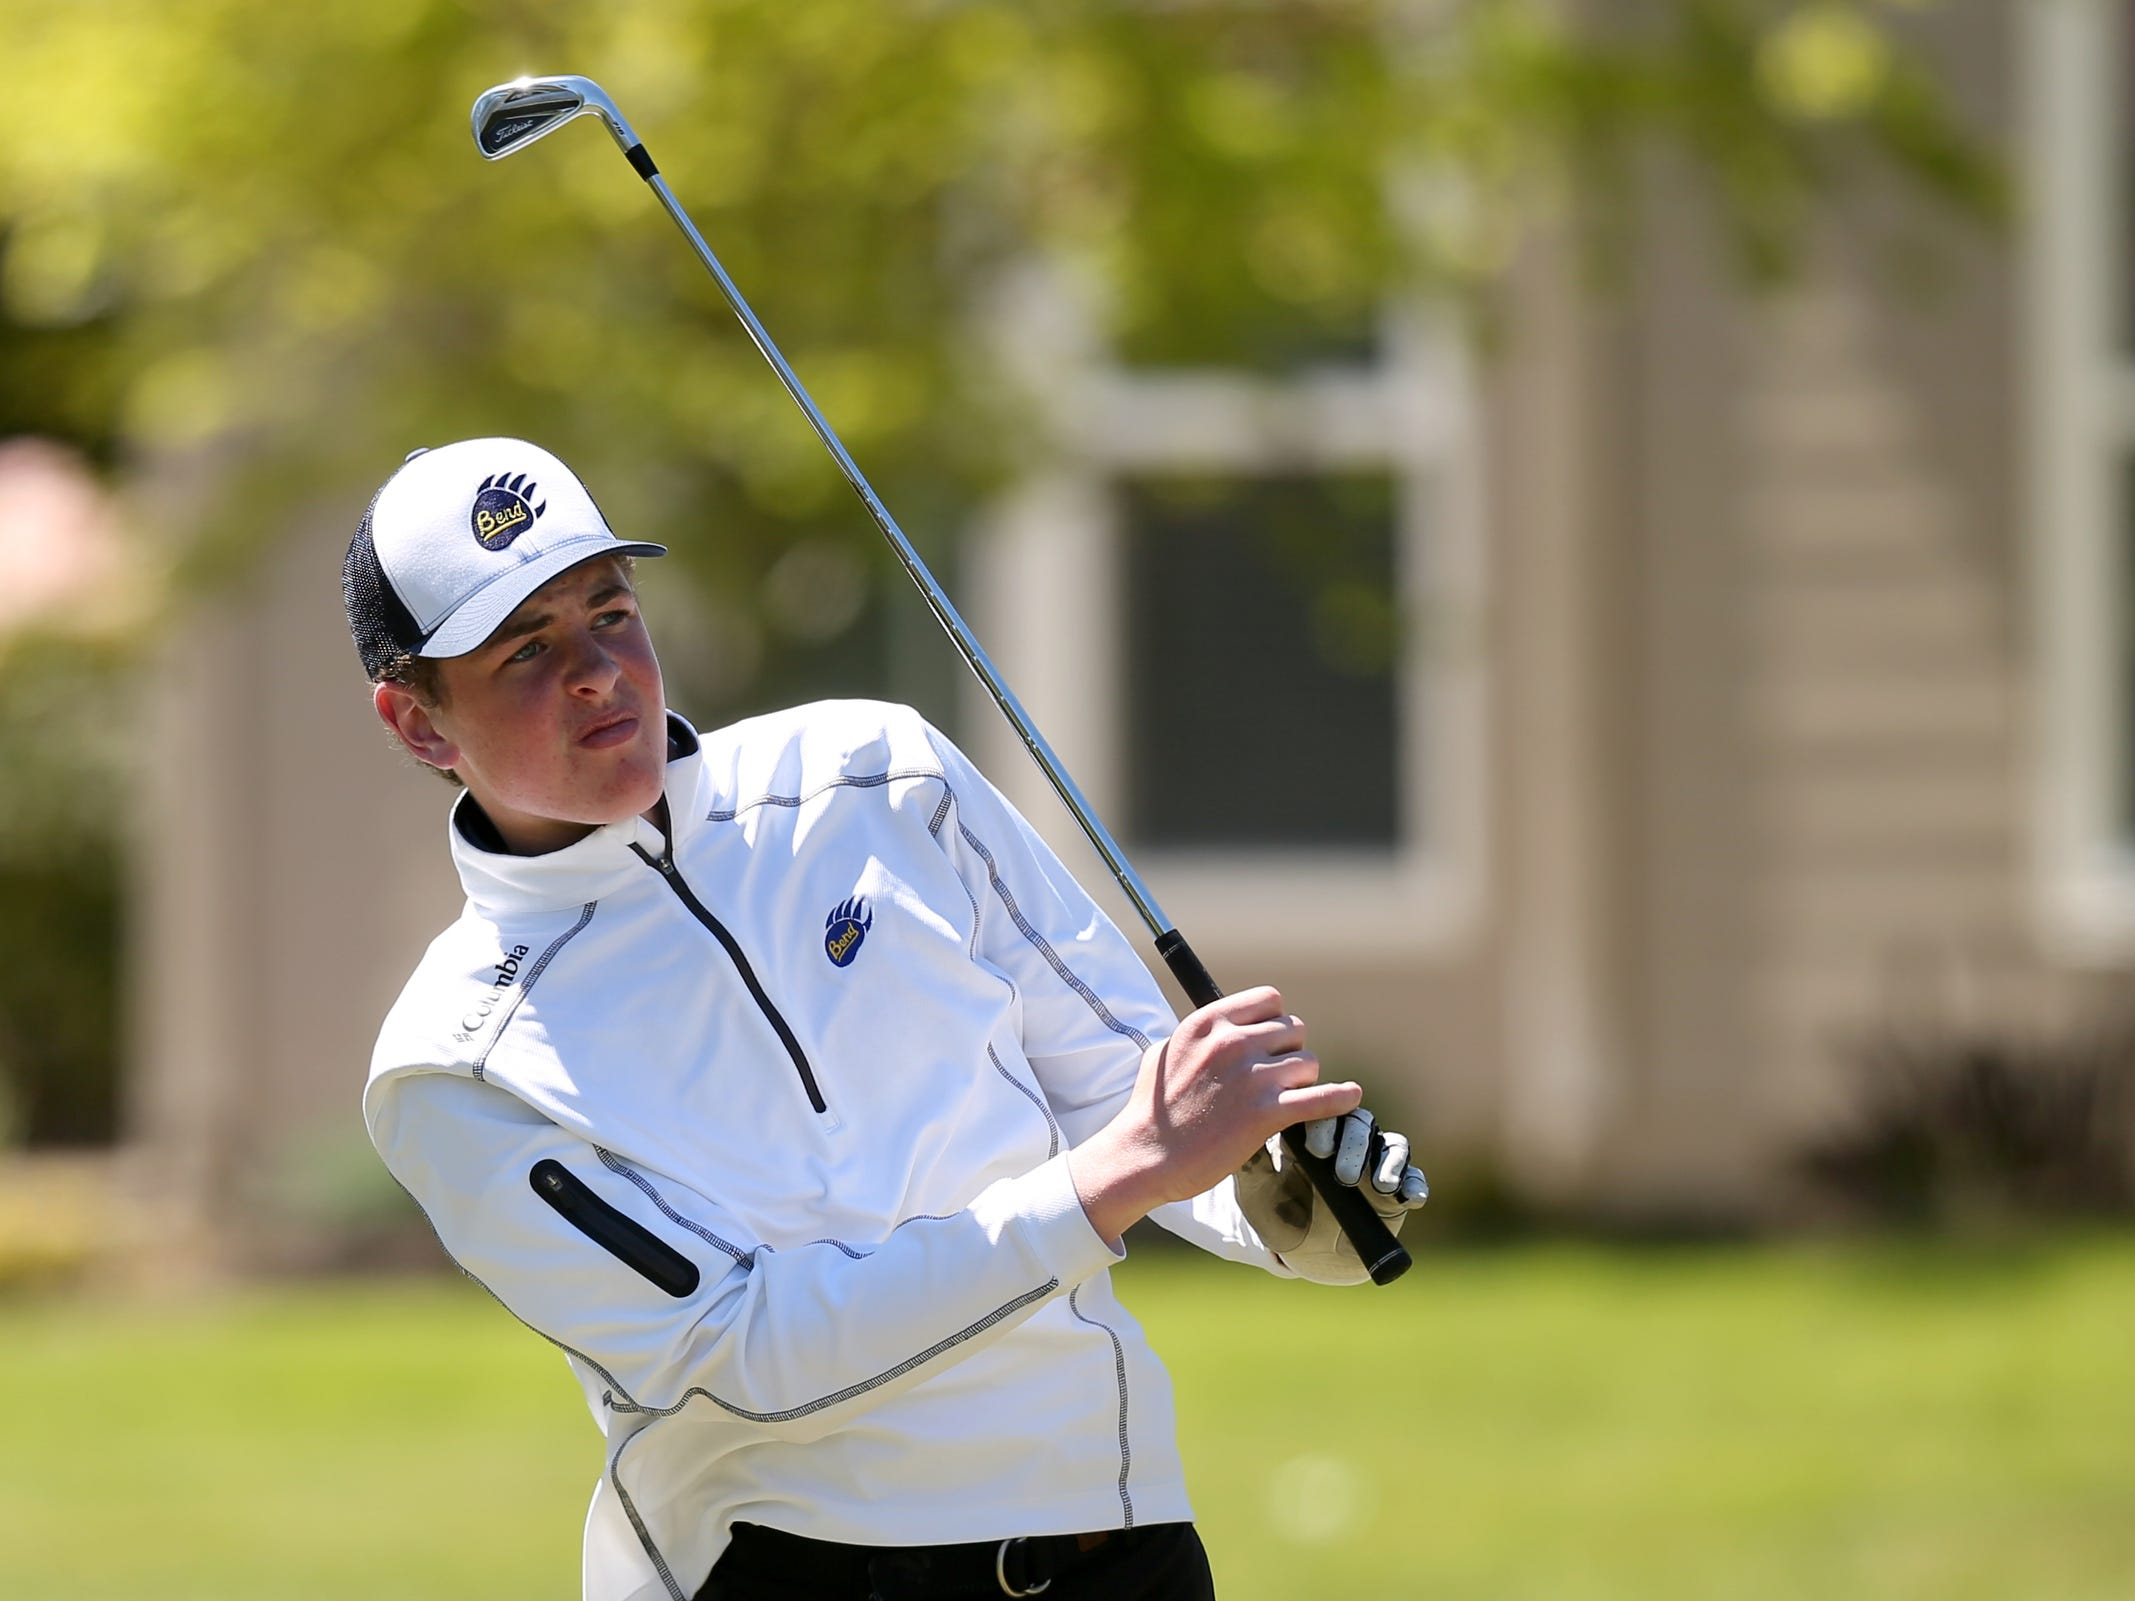 Bend's Parker Krovisky competes in the Mountain Valley Conference District championships at McNary Golf Club in Keizer on April 30, 2019.